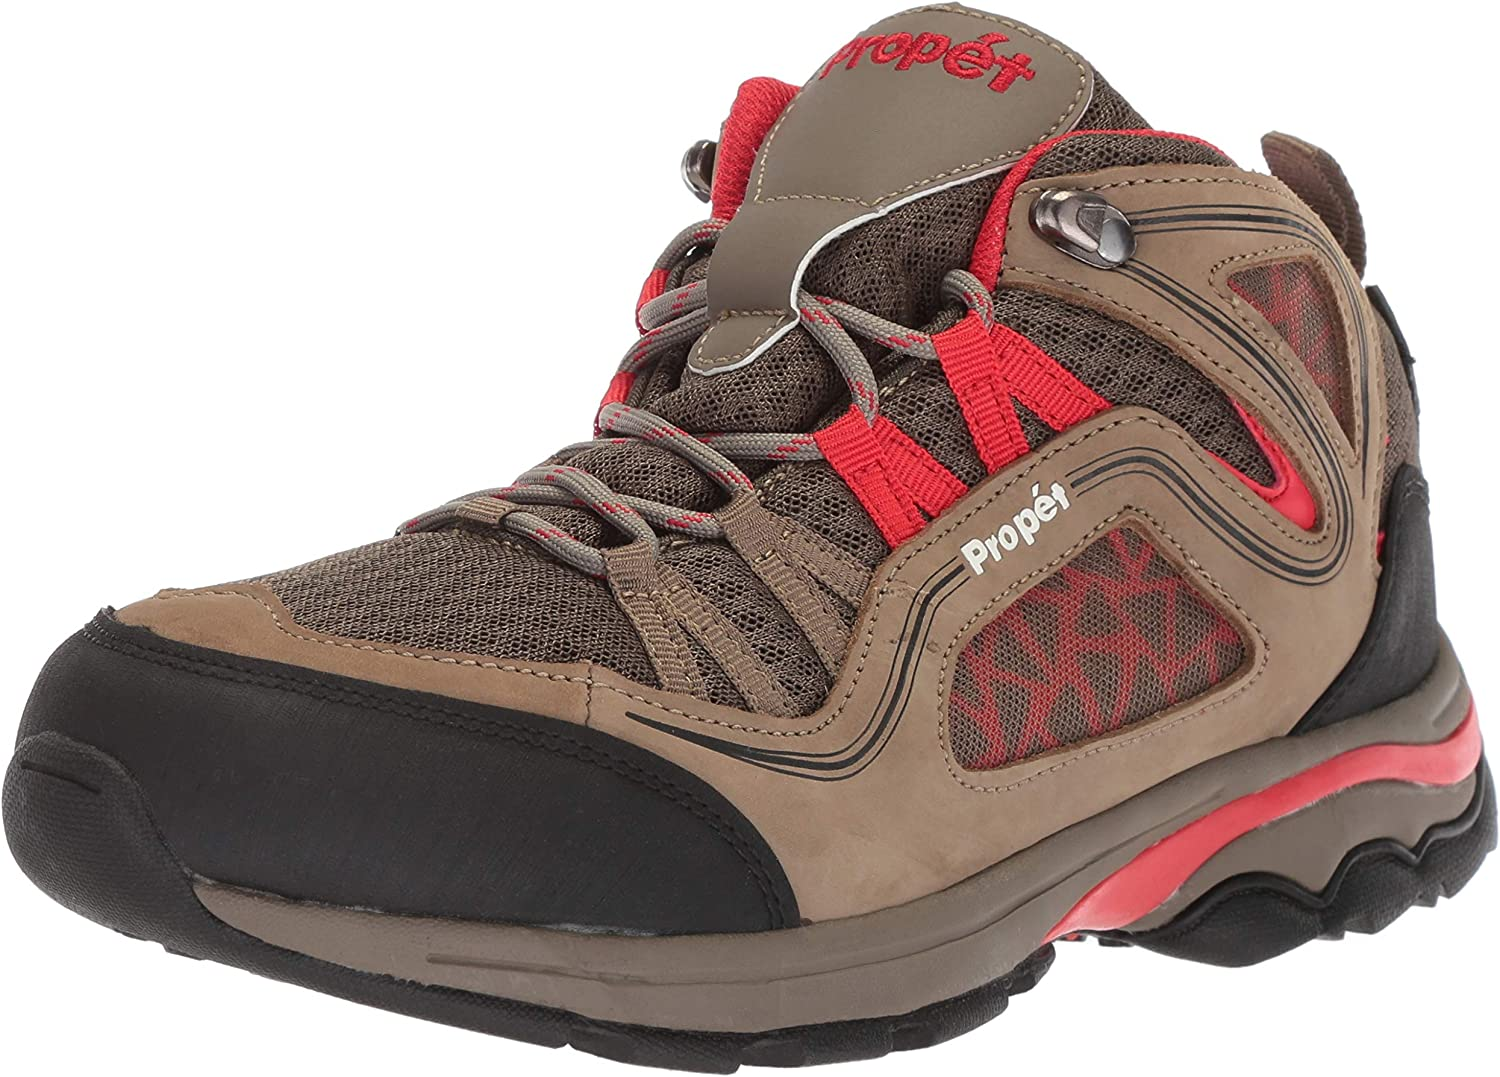 Propet Women s Peak Hiking Boot, Gunsmoke red, 7 Wide